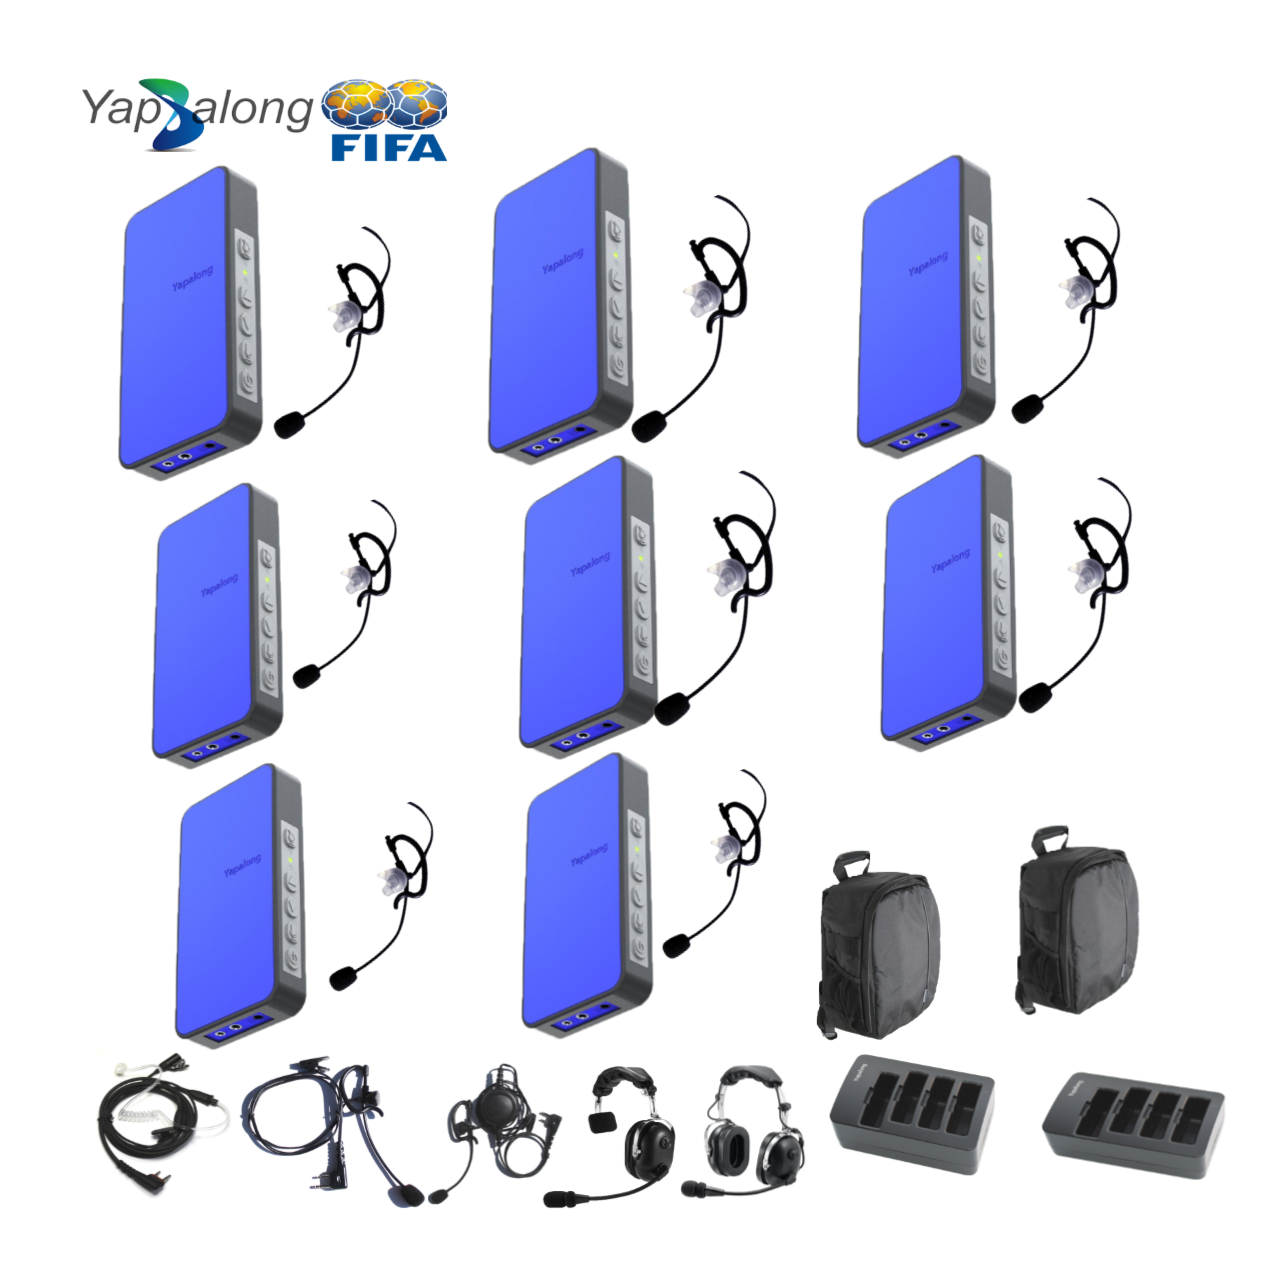 Yapalong 5000 (8-User) Complete Set Communications & IFB Intercom Systems